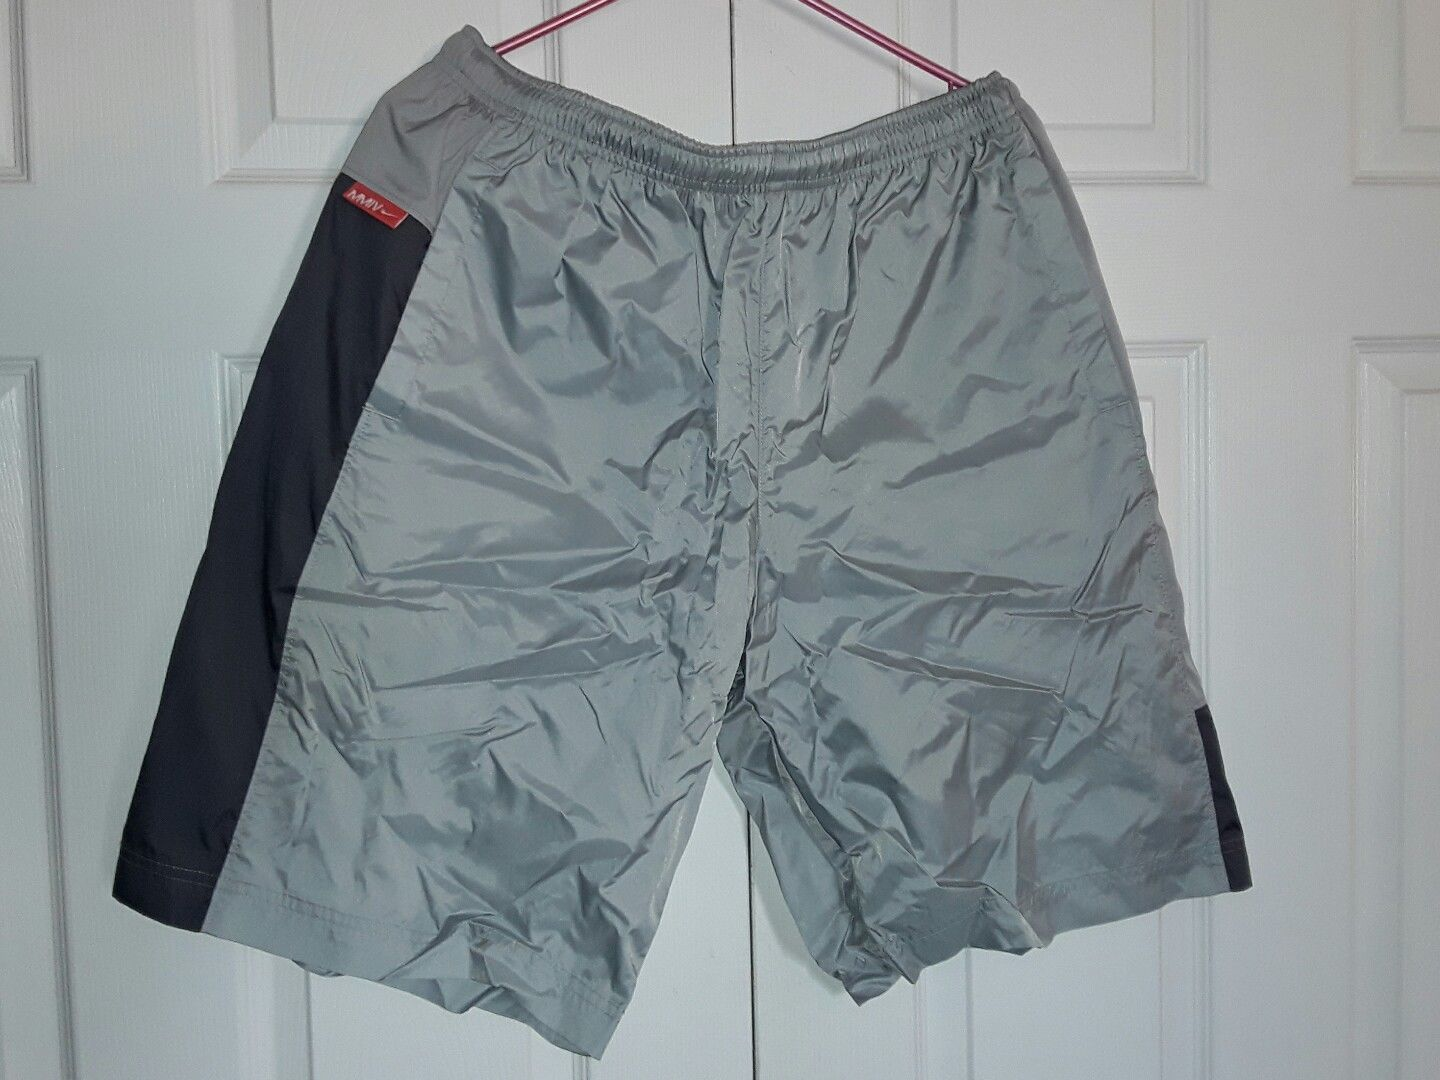 ad67aa3d Nike Shorts Rip Stop Athletic Golf Casual 2 and 50 similar items